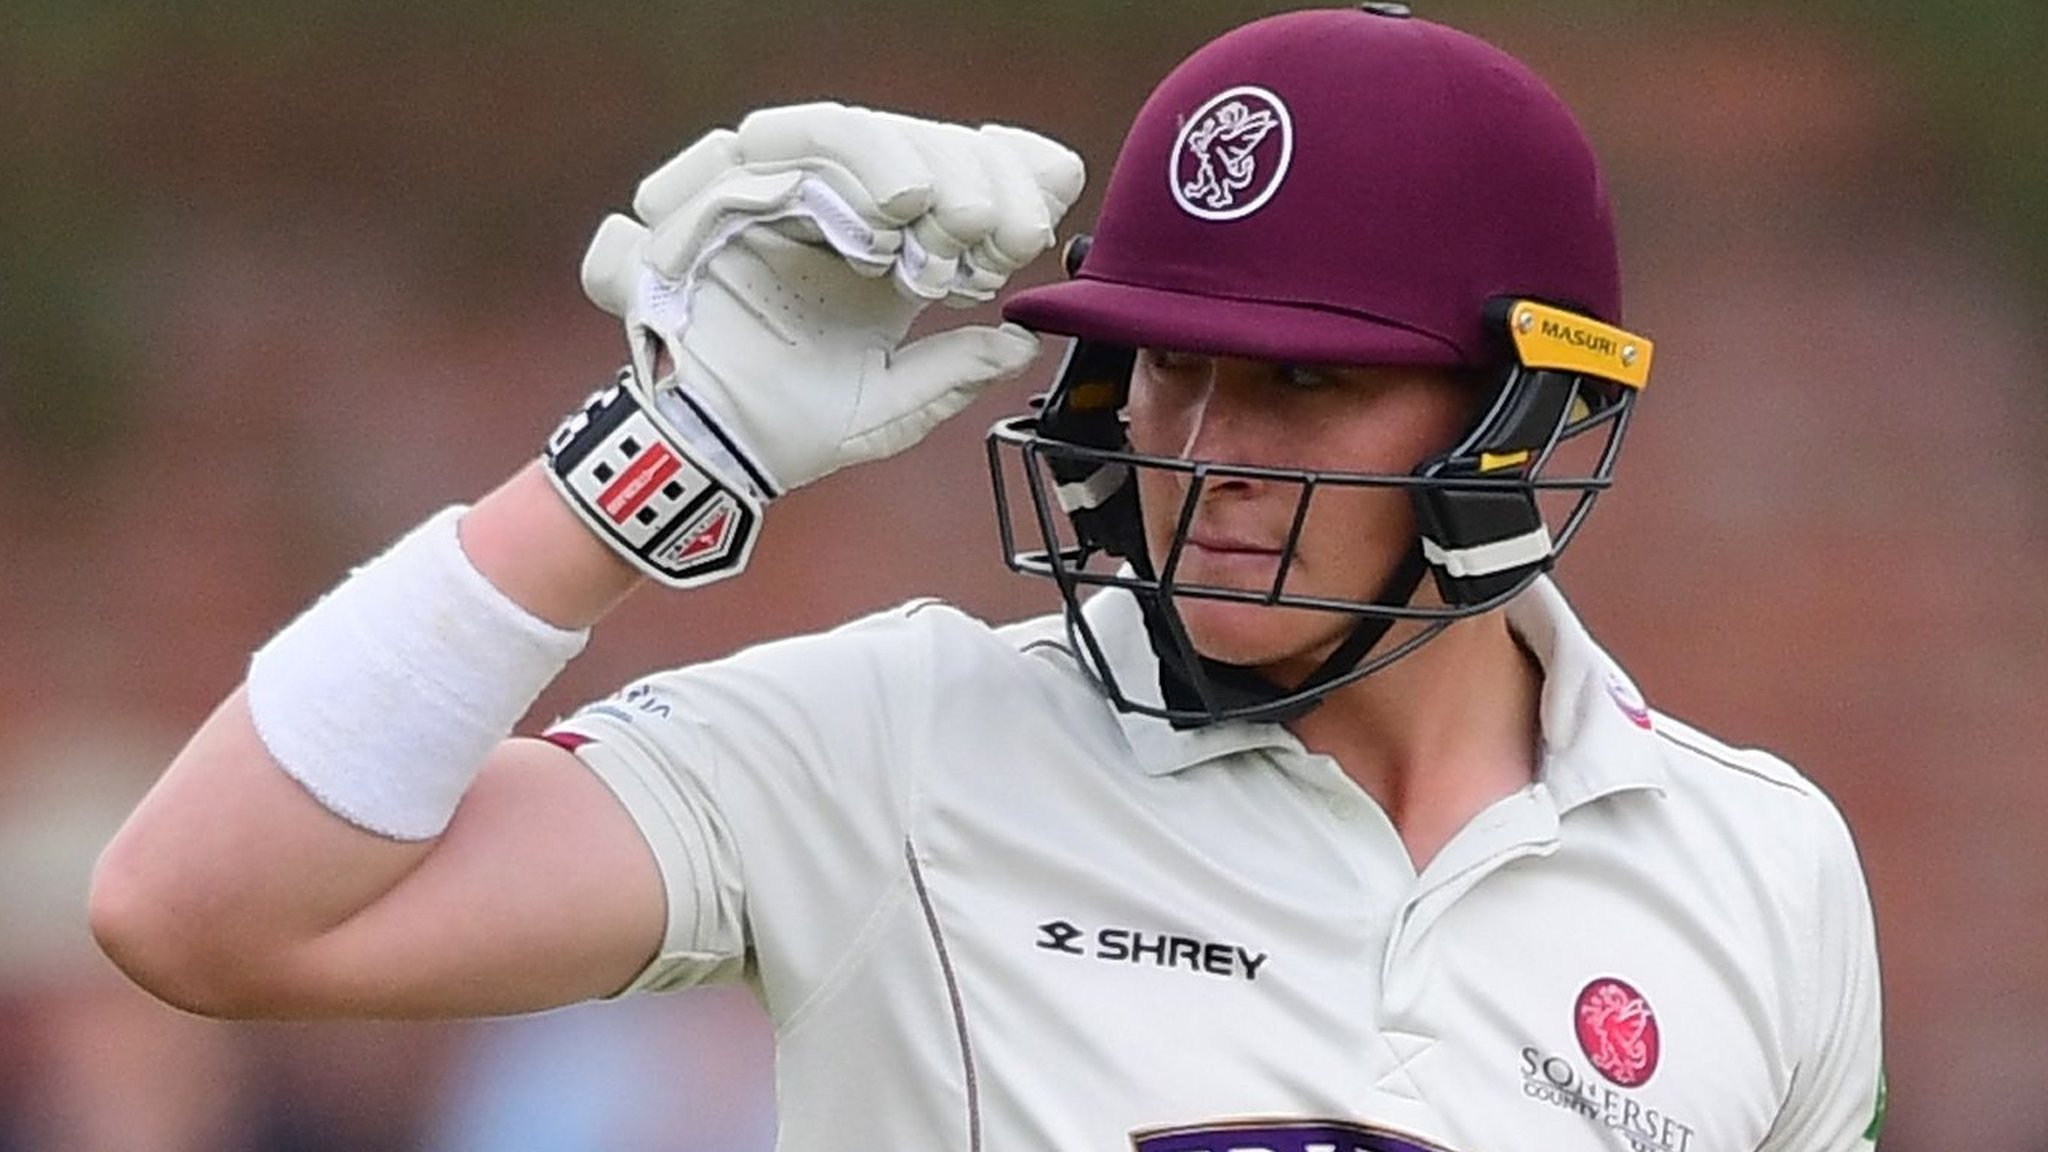 County Championship: Somerset chase 248 to beat Nottinghamshire and go top